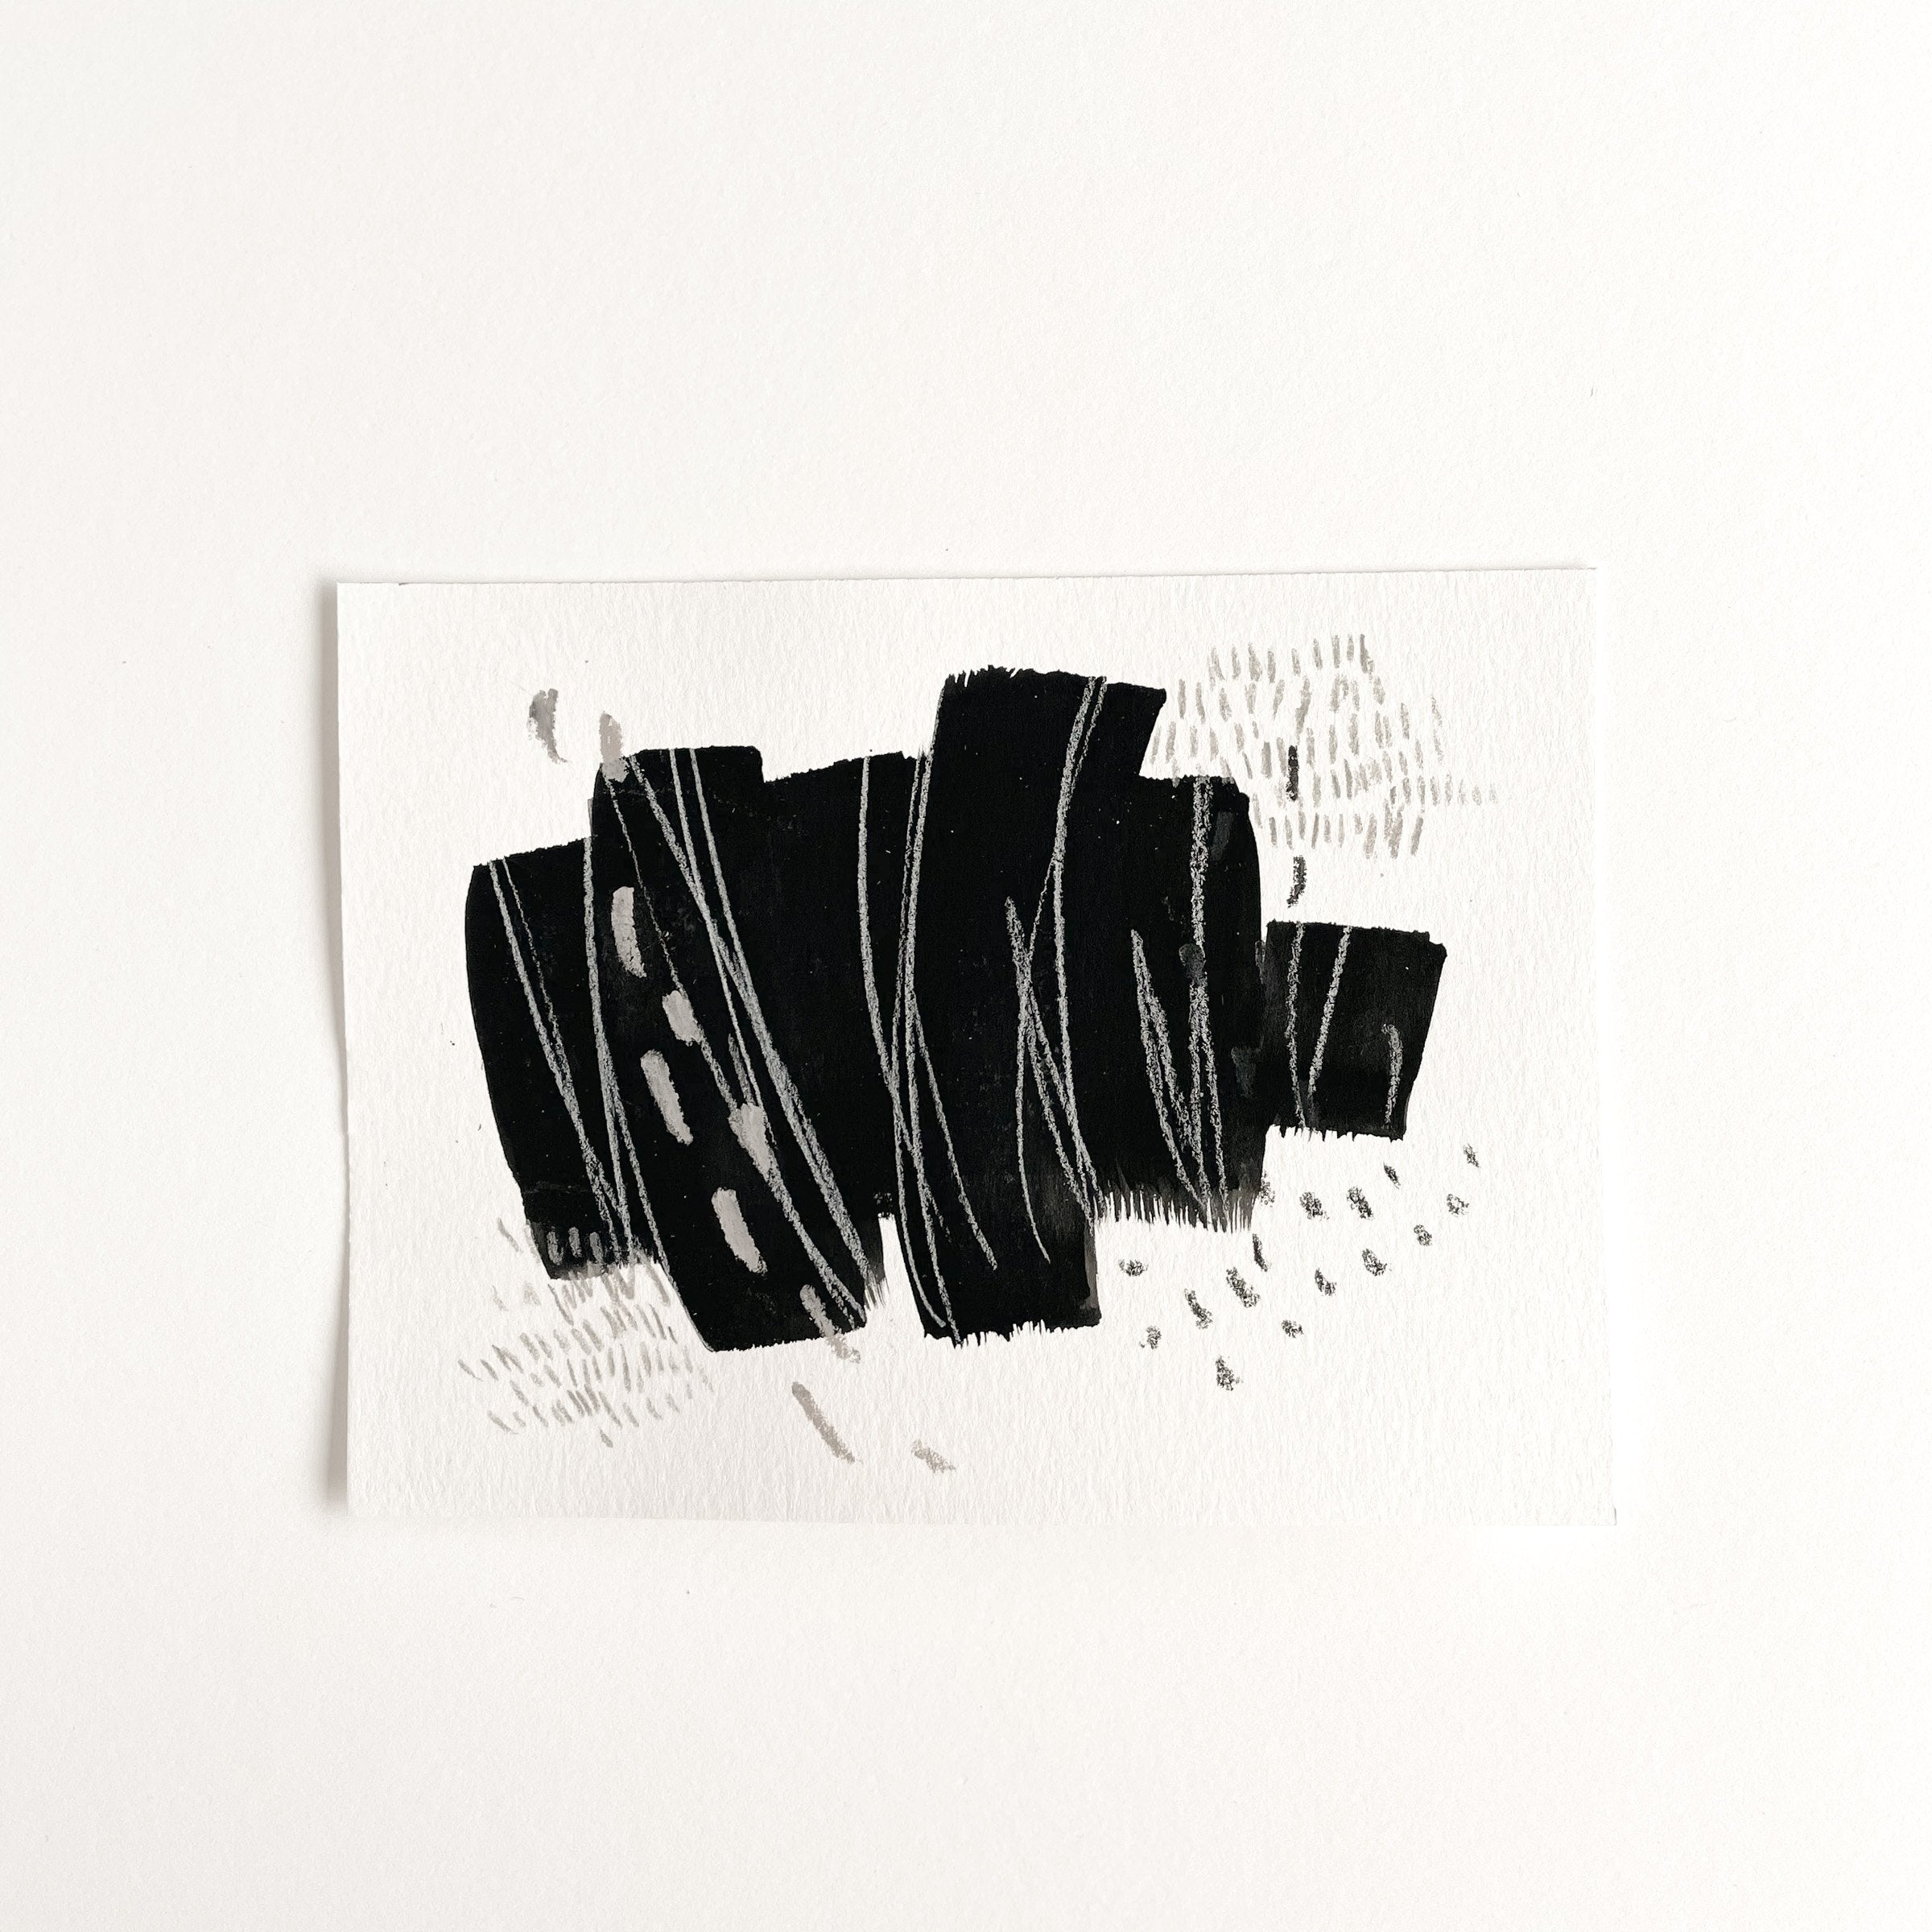 Stay 12 - Neutral, Black and white abstract painting on paper by artist Kait DeWolff. Kaitcreative